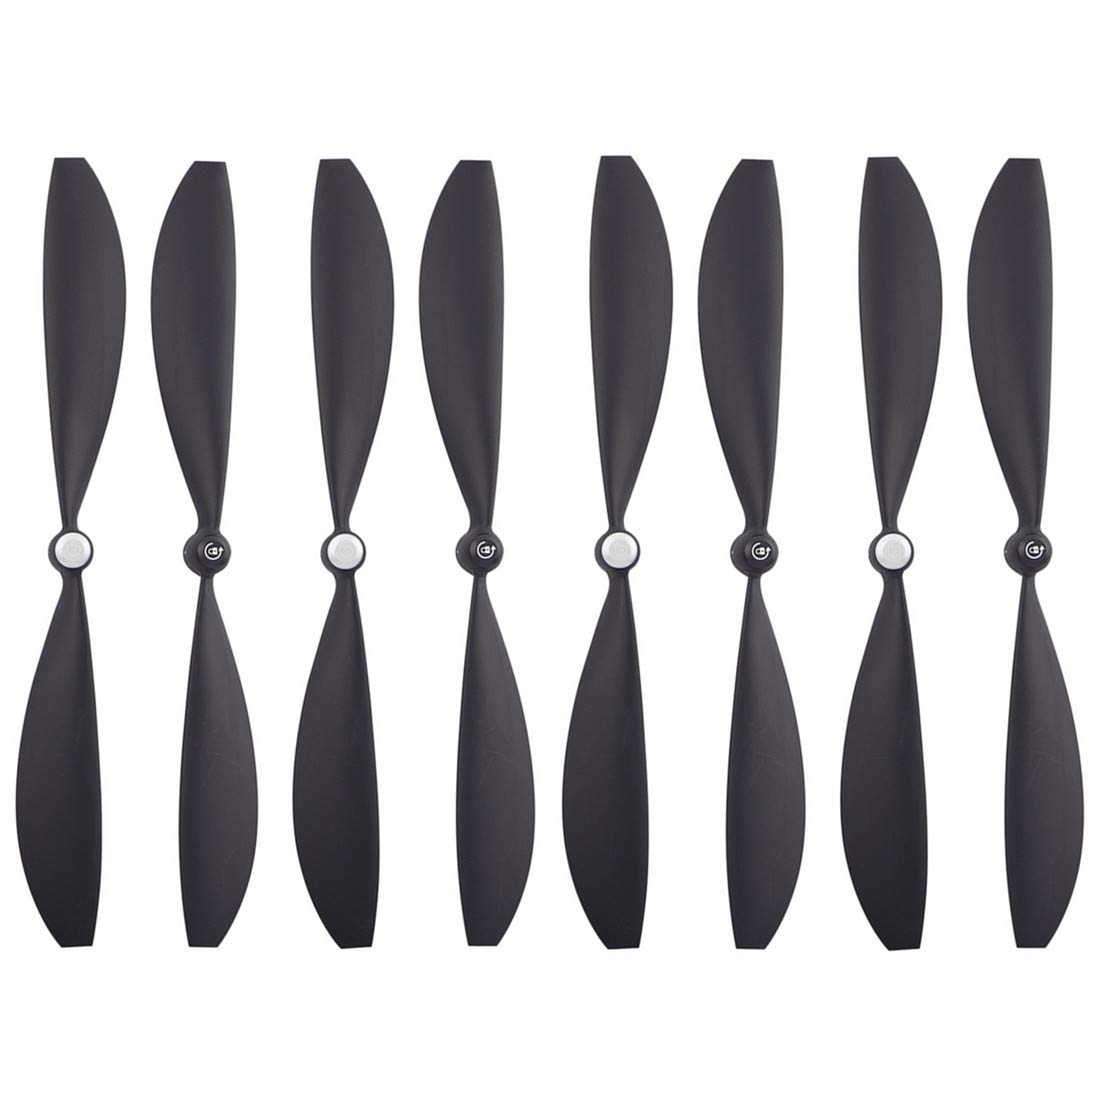 Helistar Propellers 4 Pairs Blades Accessories for GoPro Karma Drone Self-Tightening Propeller CW CCW Props by Helistar (Image #7)